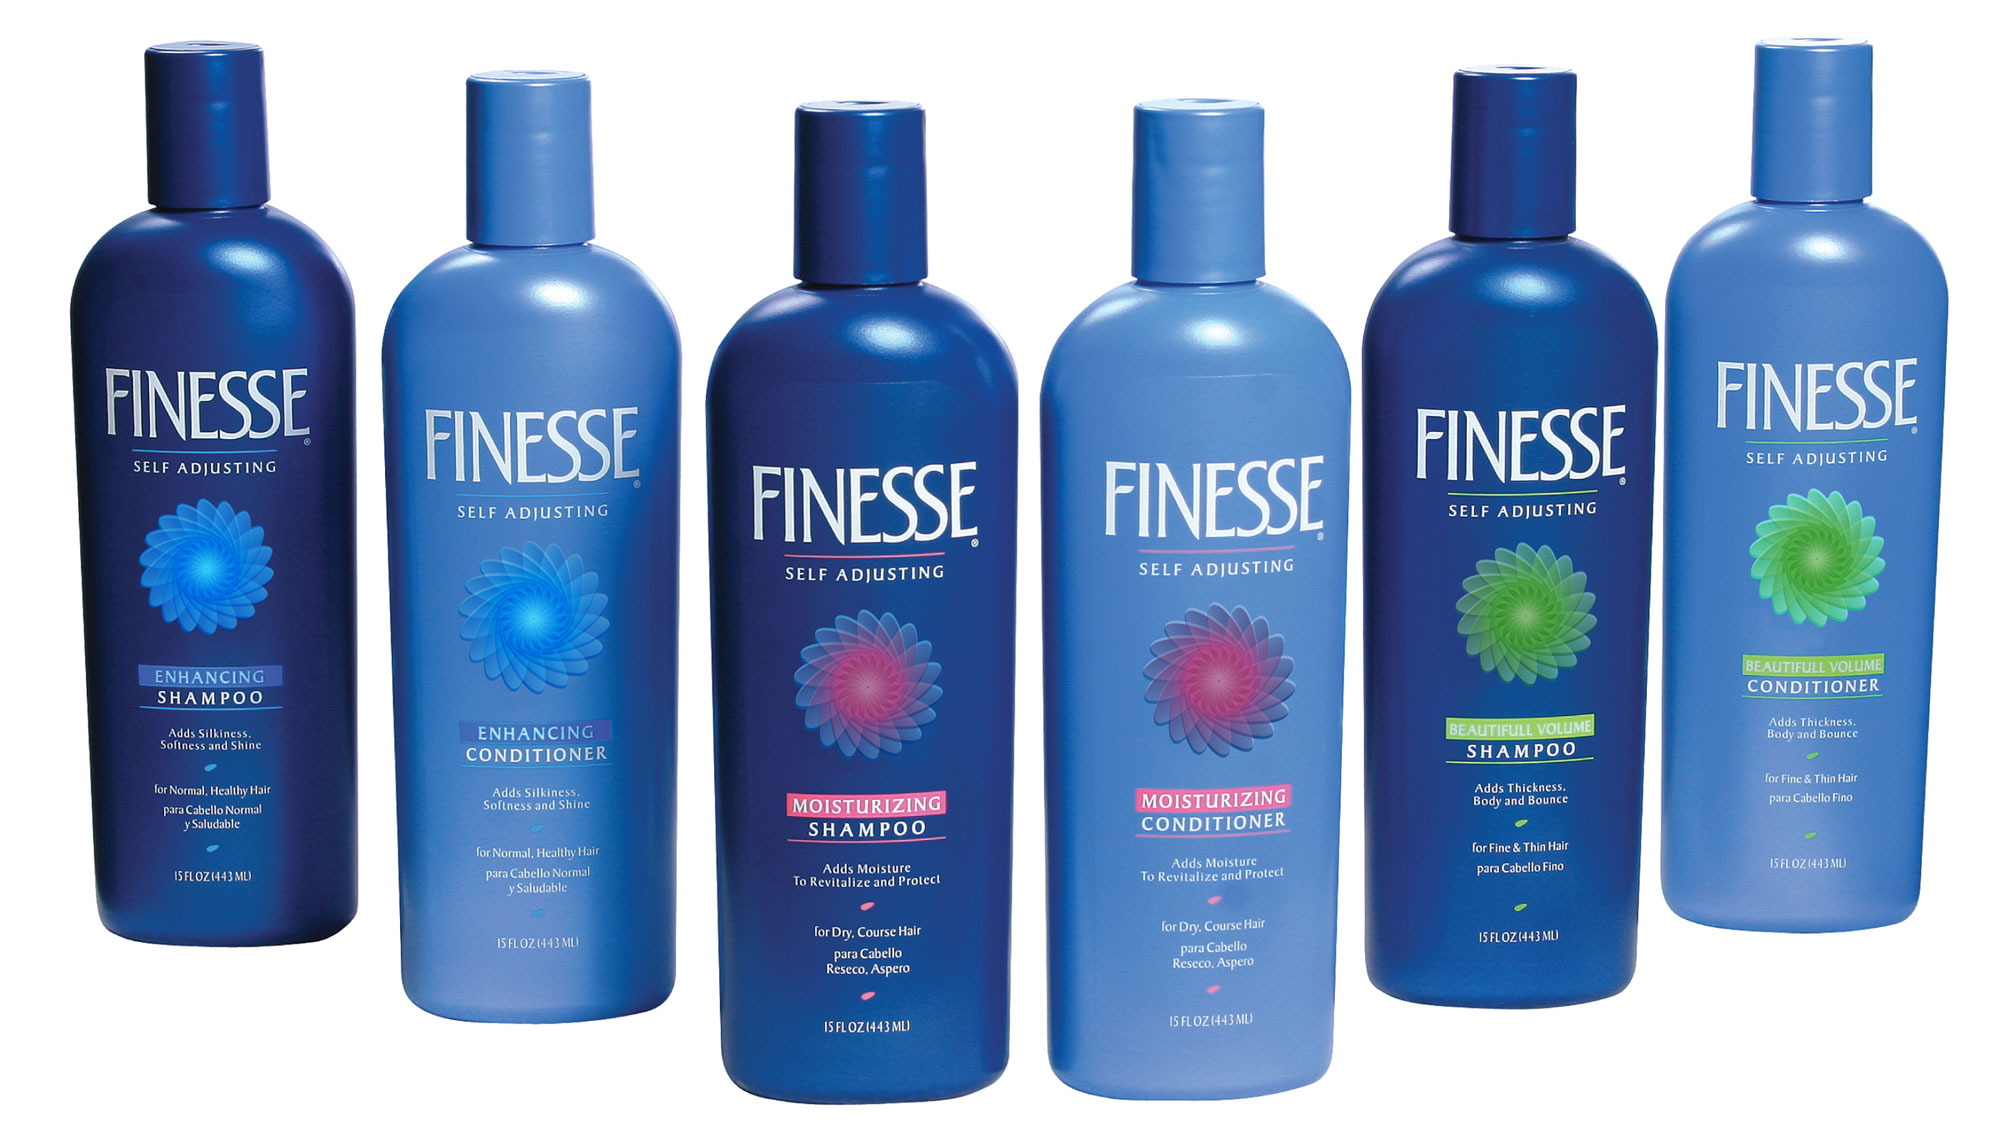 Finesse coupons